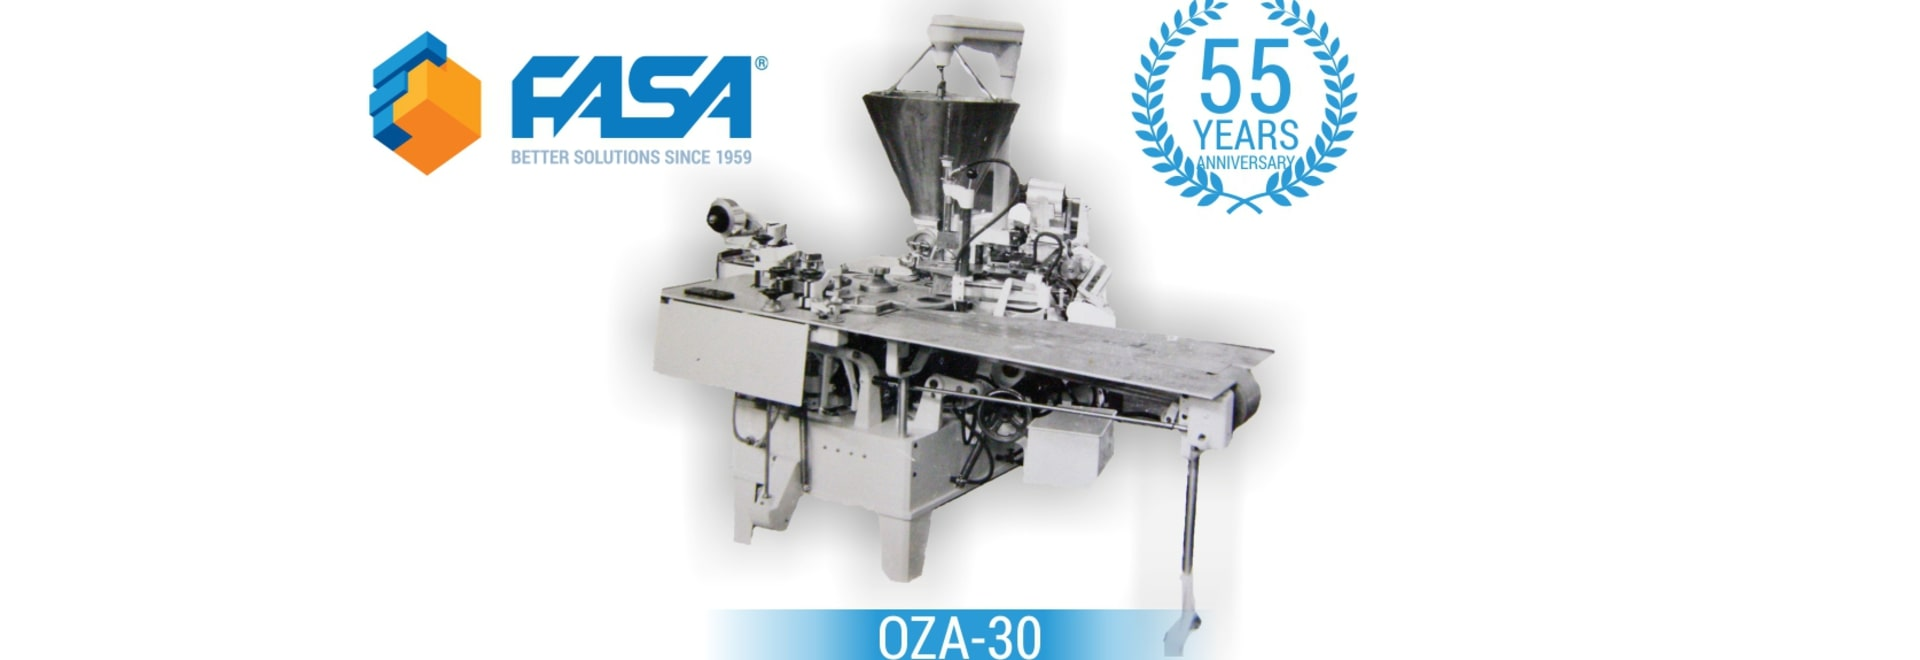 FASA celebrates 55 years of the first machine!